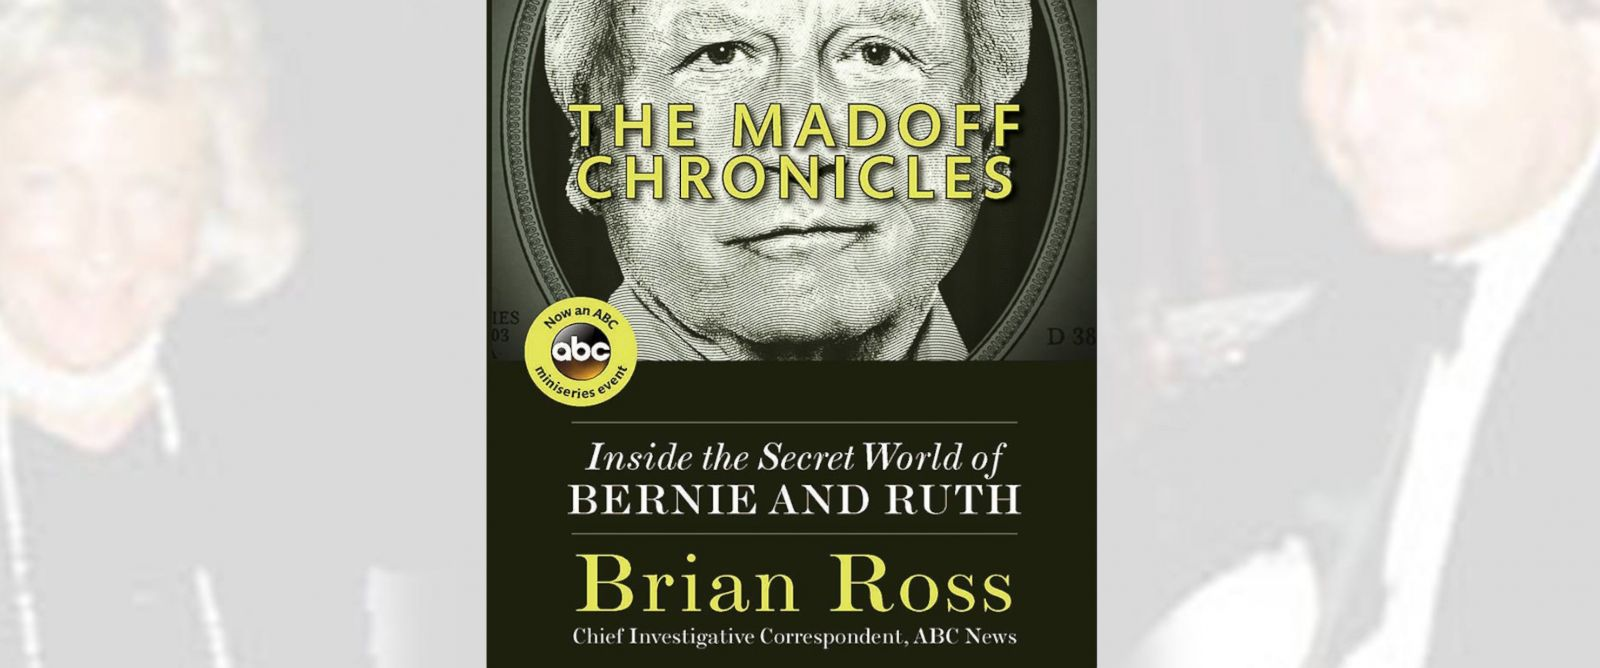 Brian Ross Madoff Chronicles Book cover - ABC News